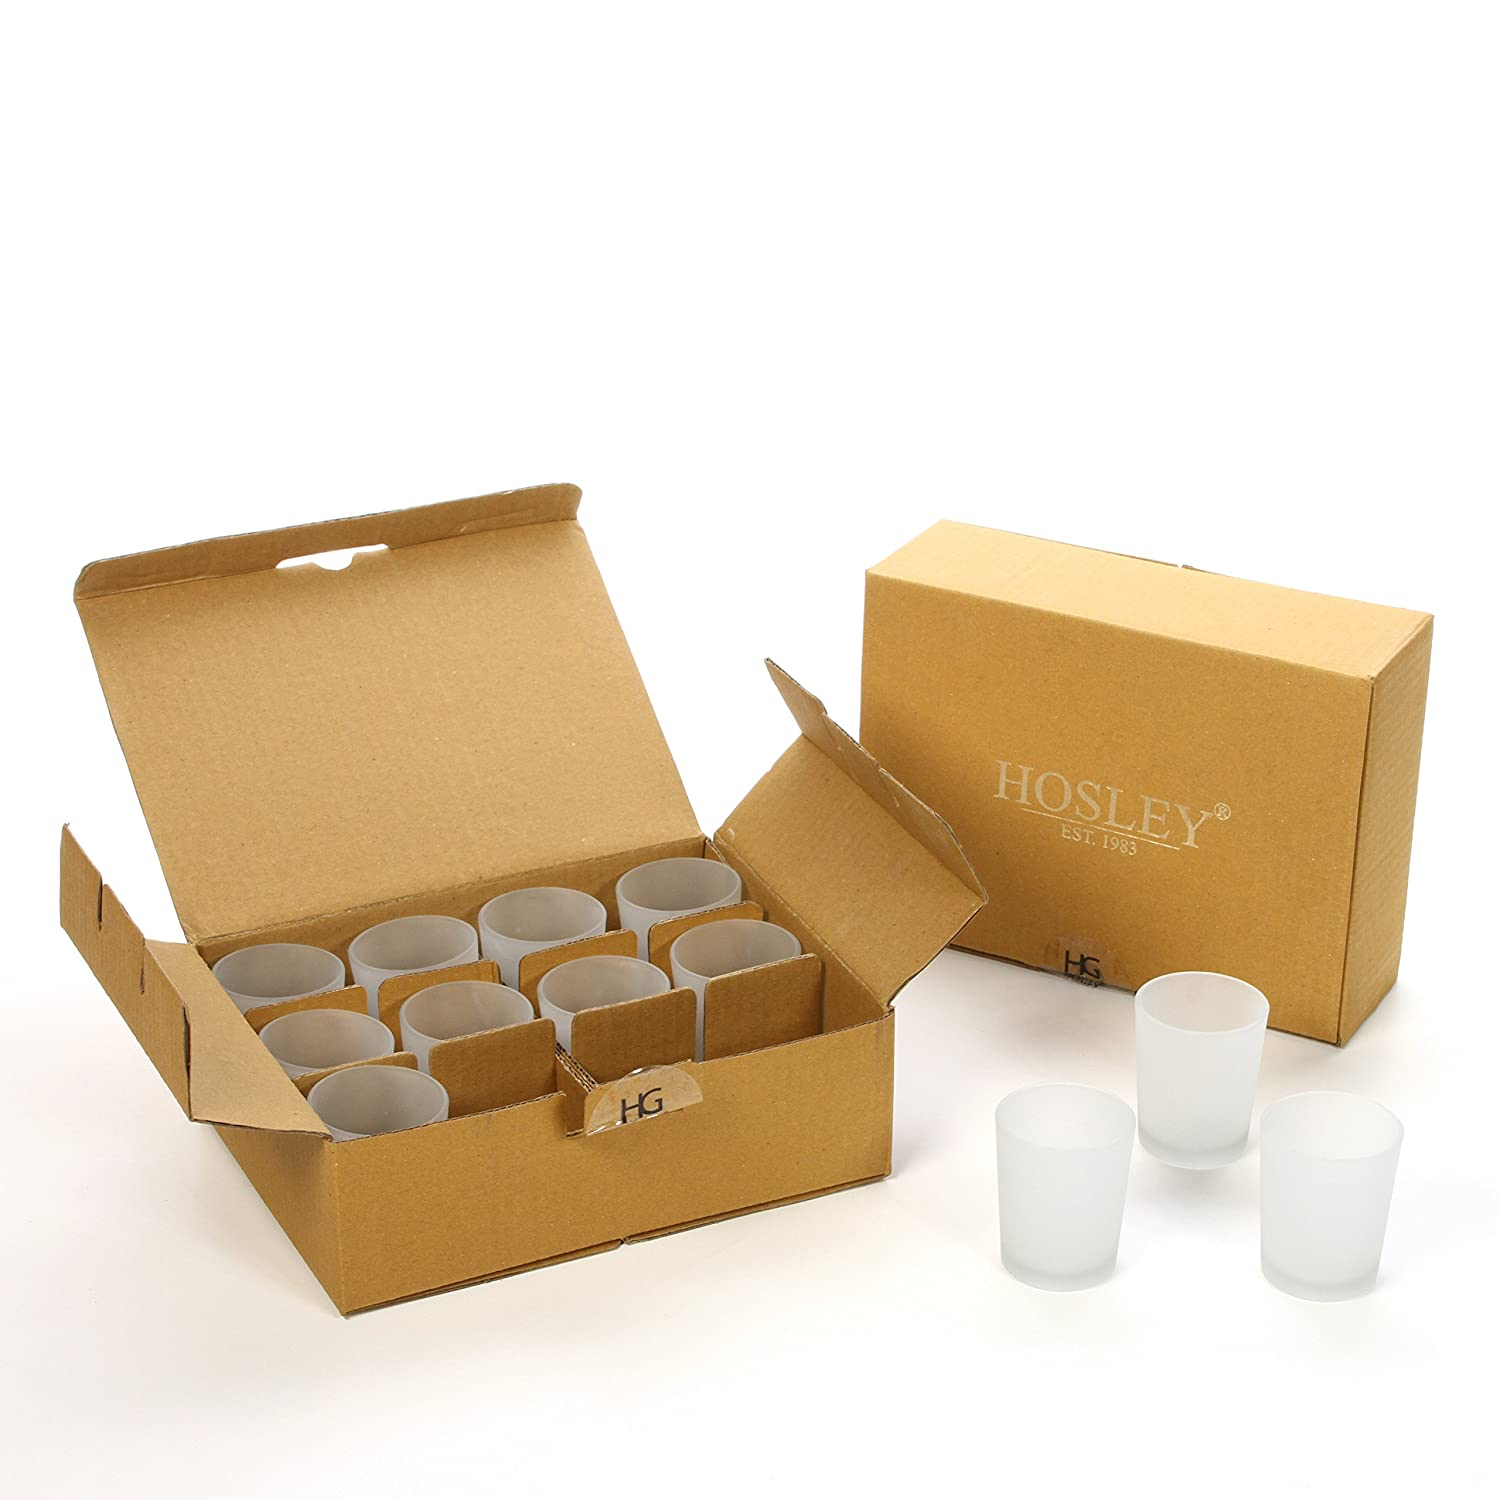 Hosley Value Pack of 24 Frosted Glass Votive, Tealight Holder. Ideal for Parties, Aromatherapy, Spa, Wedding FBA_FBA-G45653ONC-1-EA